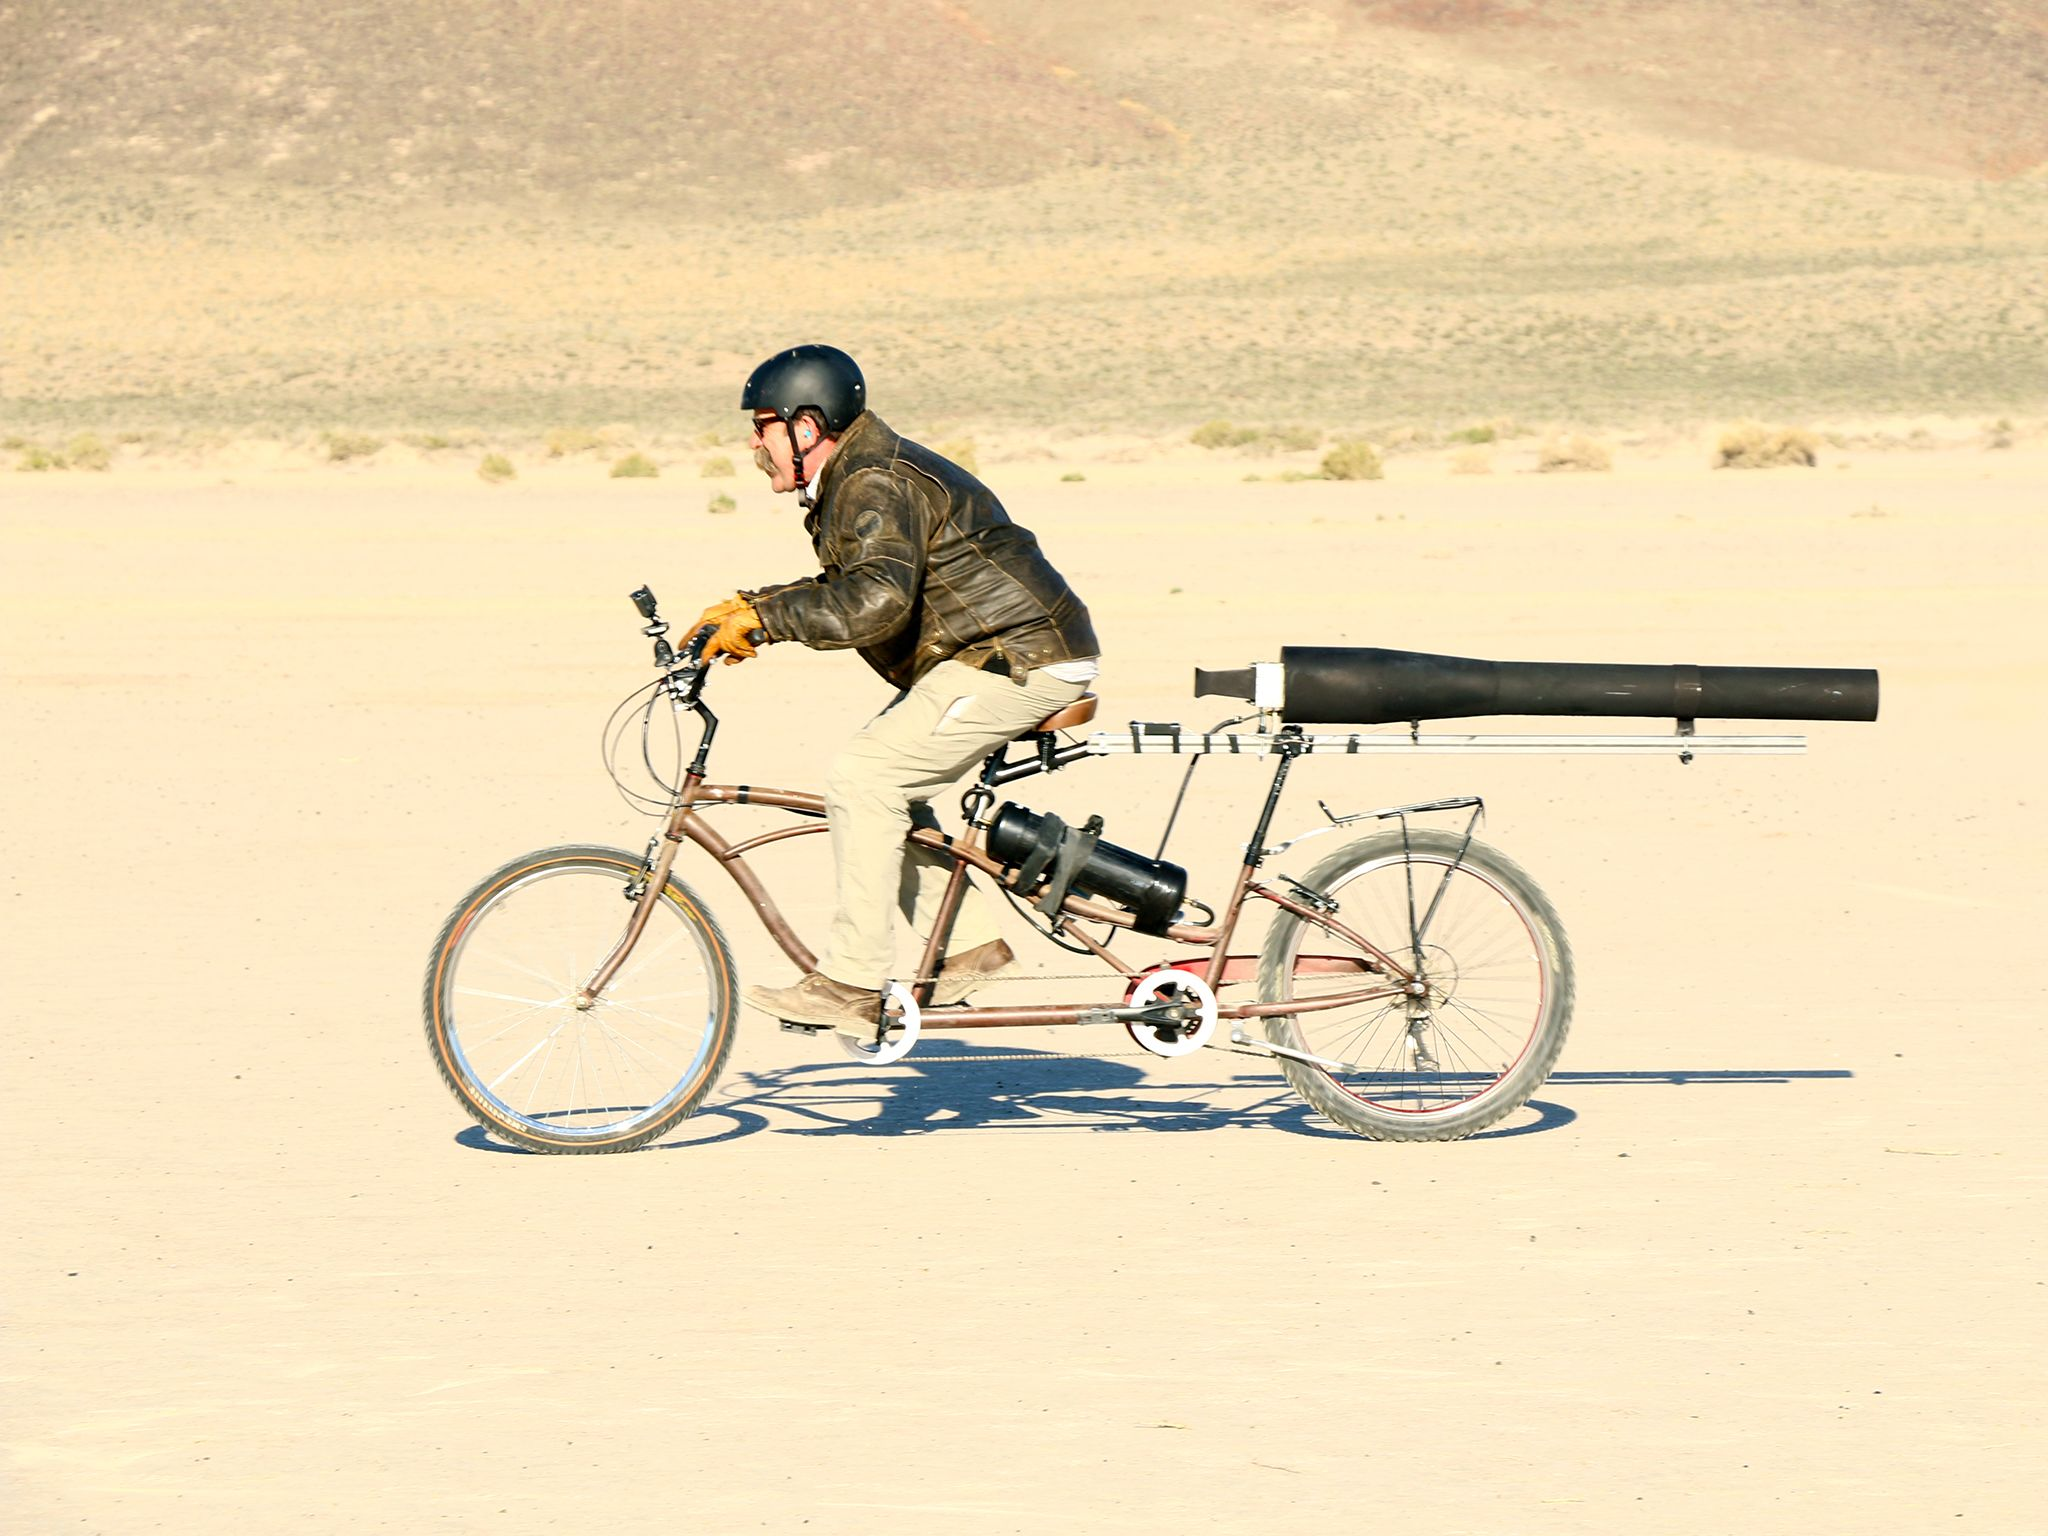 Fallon, Nev.:  Engineer, Dick Strawbridge tests his rocket powered bike. This image is from... [Photo of the day - دسامبر 2015]